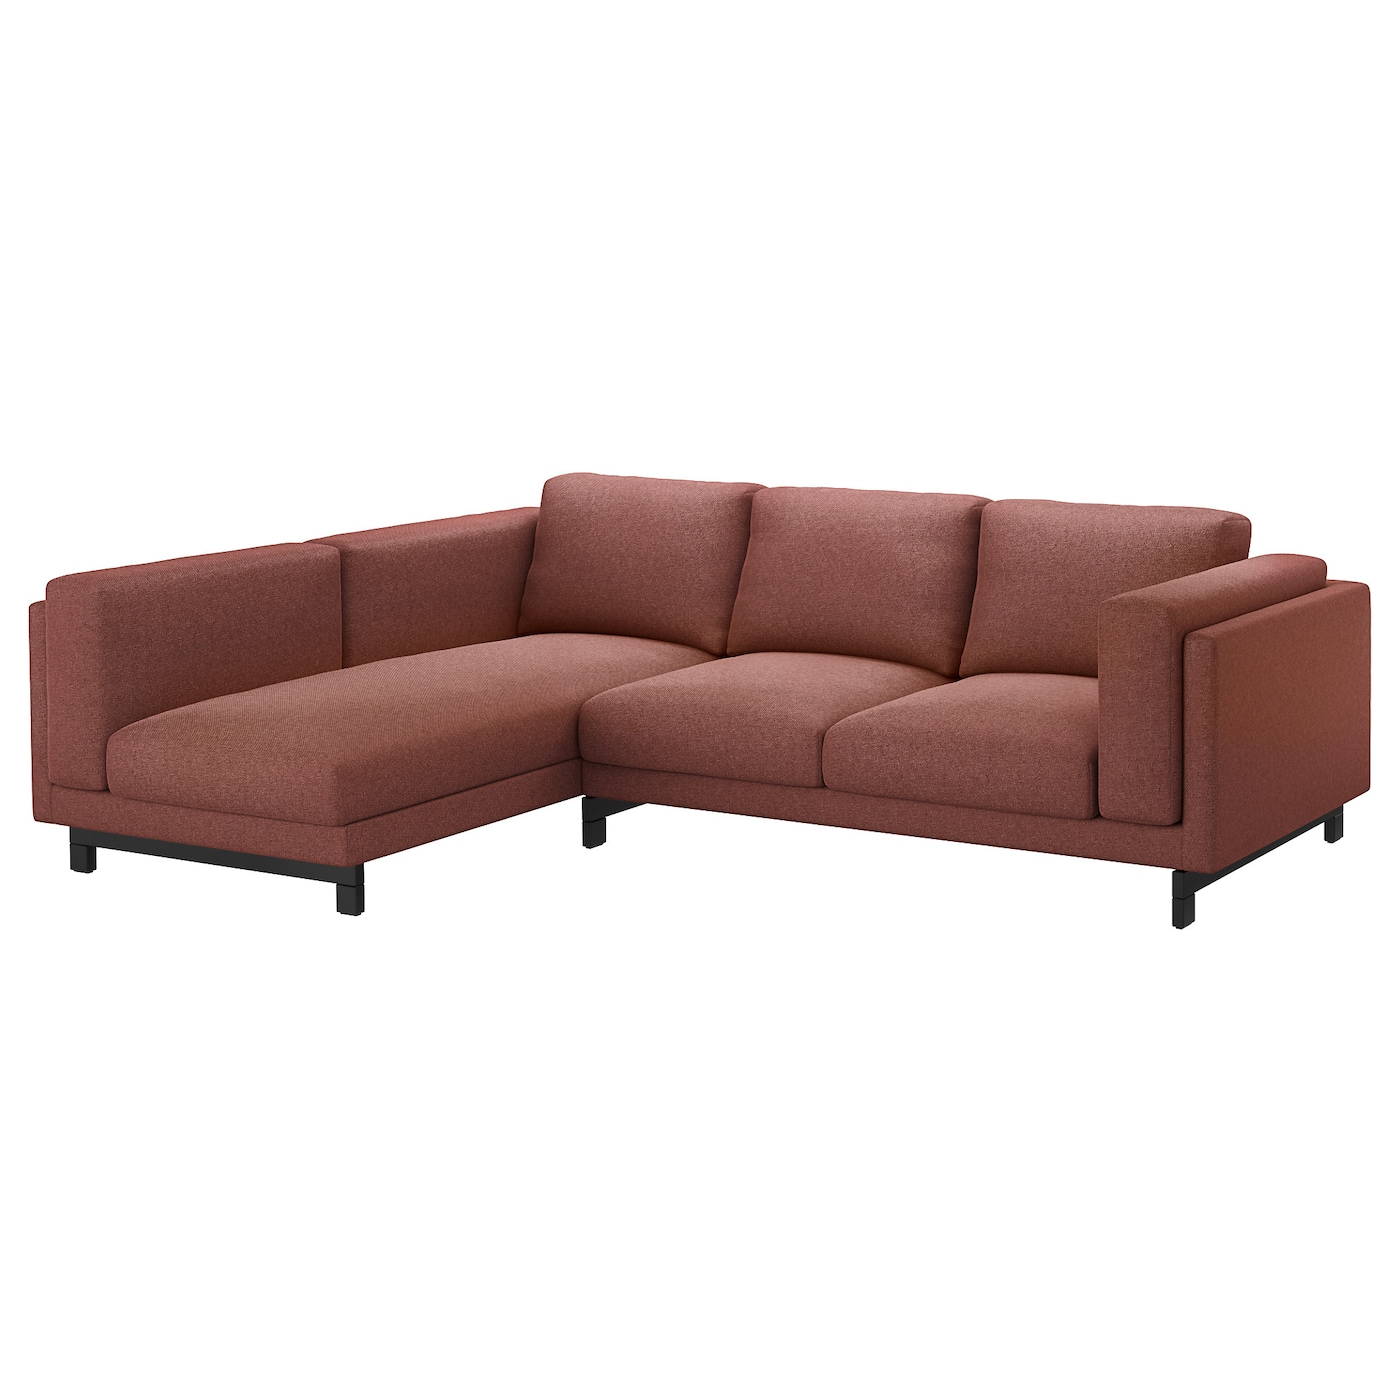 Nockeby two seat sofa w chaise longue left tallmyra rust - Chaise longue modernos ...